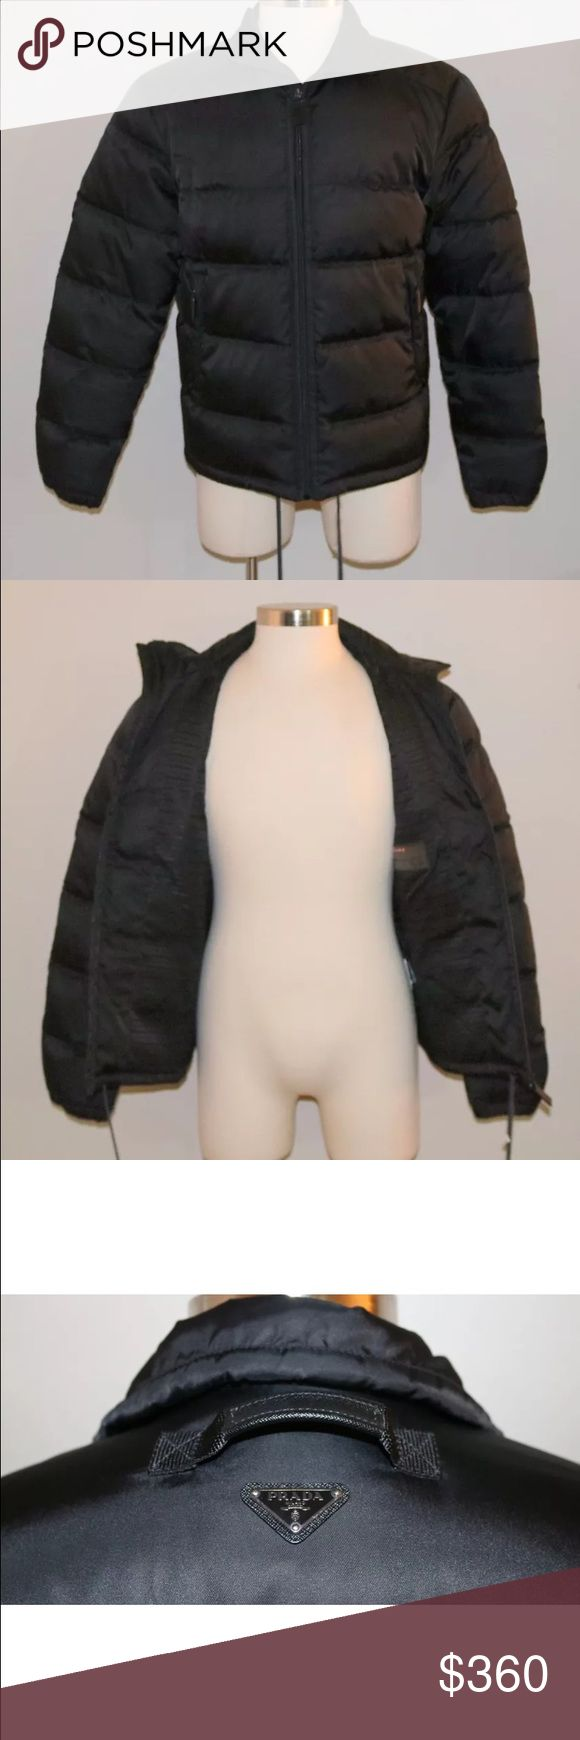 Prada men puffer coat Brand: Prada Size: Euro 52 / 42 US Material: 100% Nylon Color(s): Black Down Leather trim   Additional Information: This coat is in great condition without issues. This listing is for the jacket only. All questions are welcomed! Thank you for viewing this item and please check our over 1000 other suits, items, and acce Prada Jackets & Coats Puffers